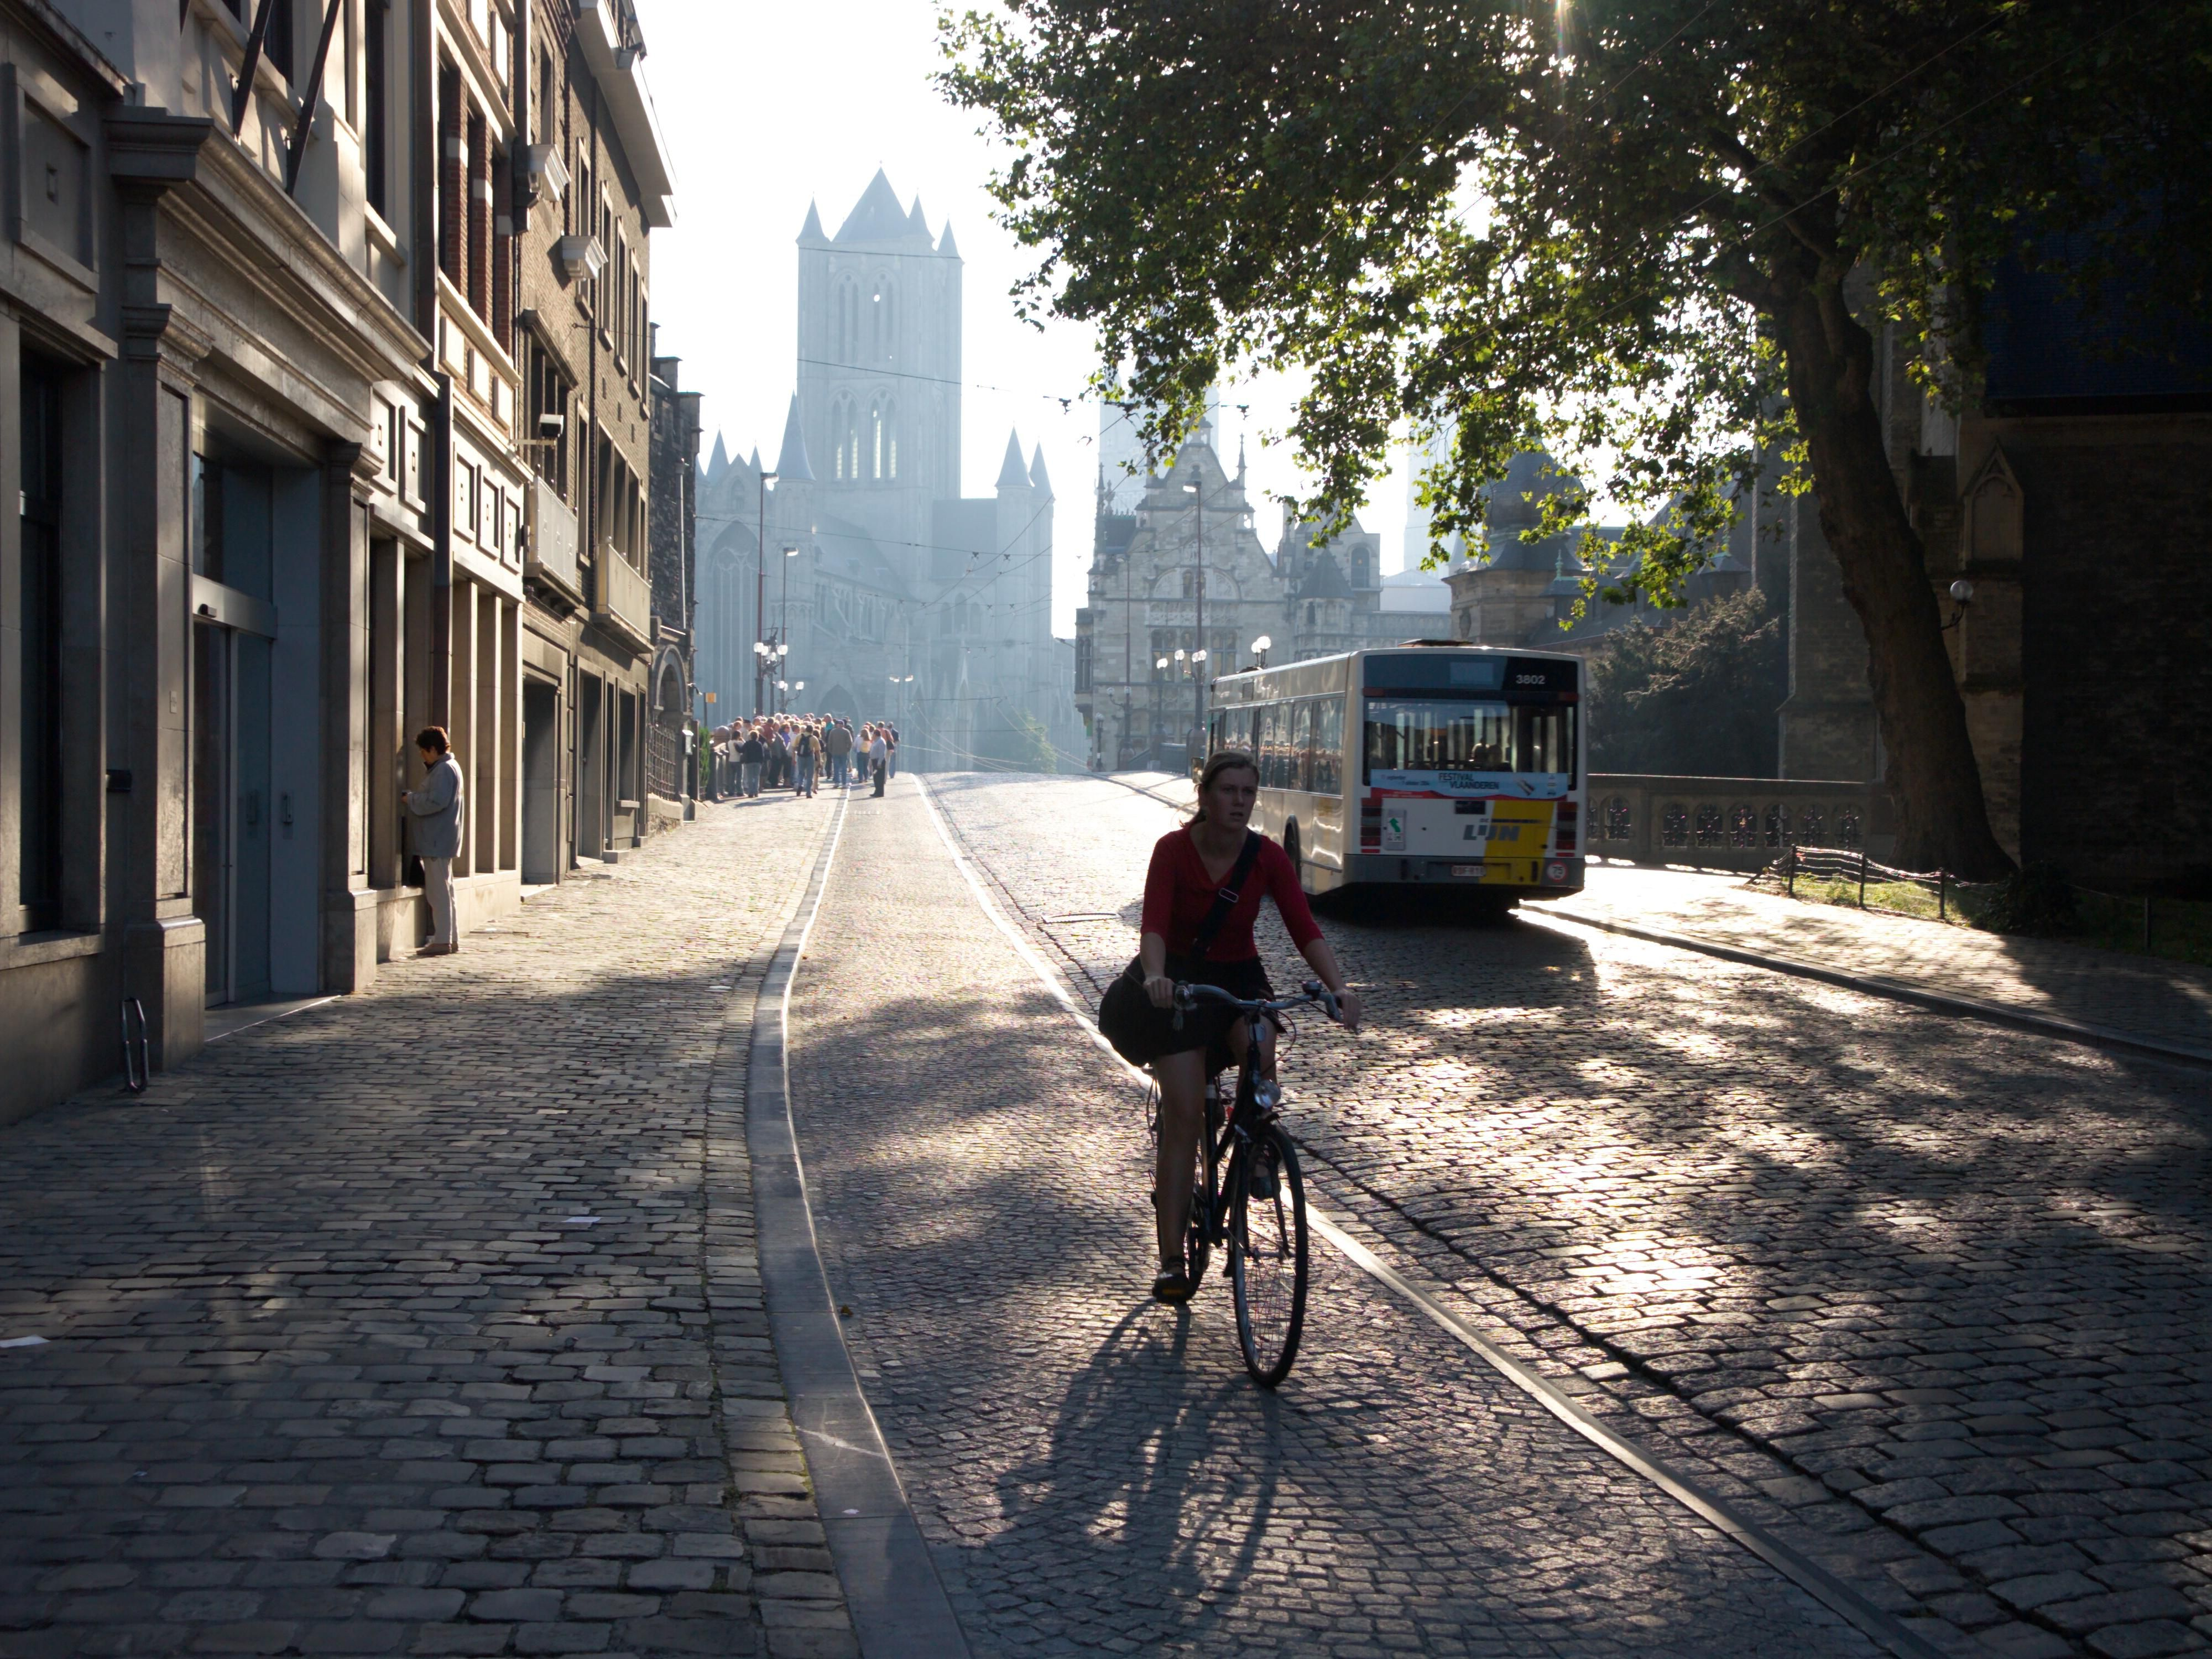 Discover Gent by bike - Rent one at the hotel!